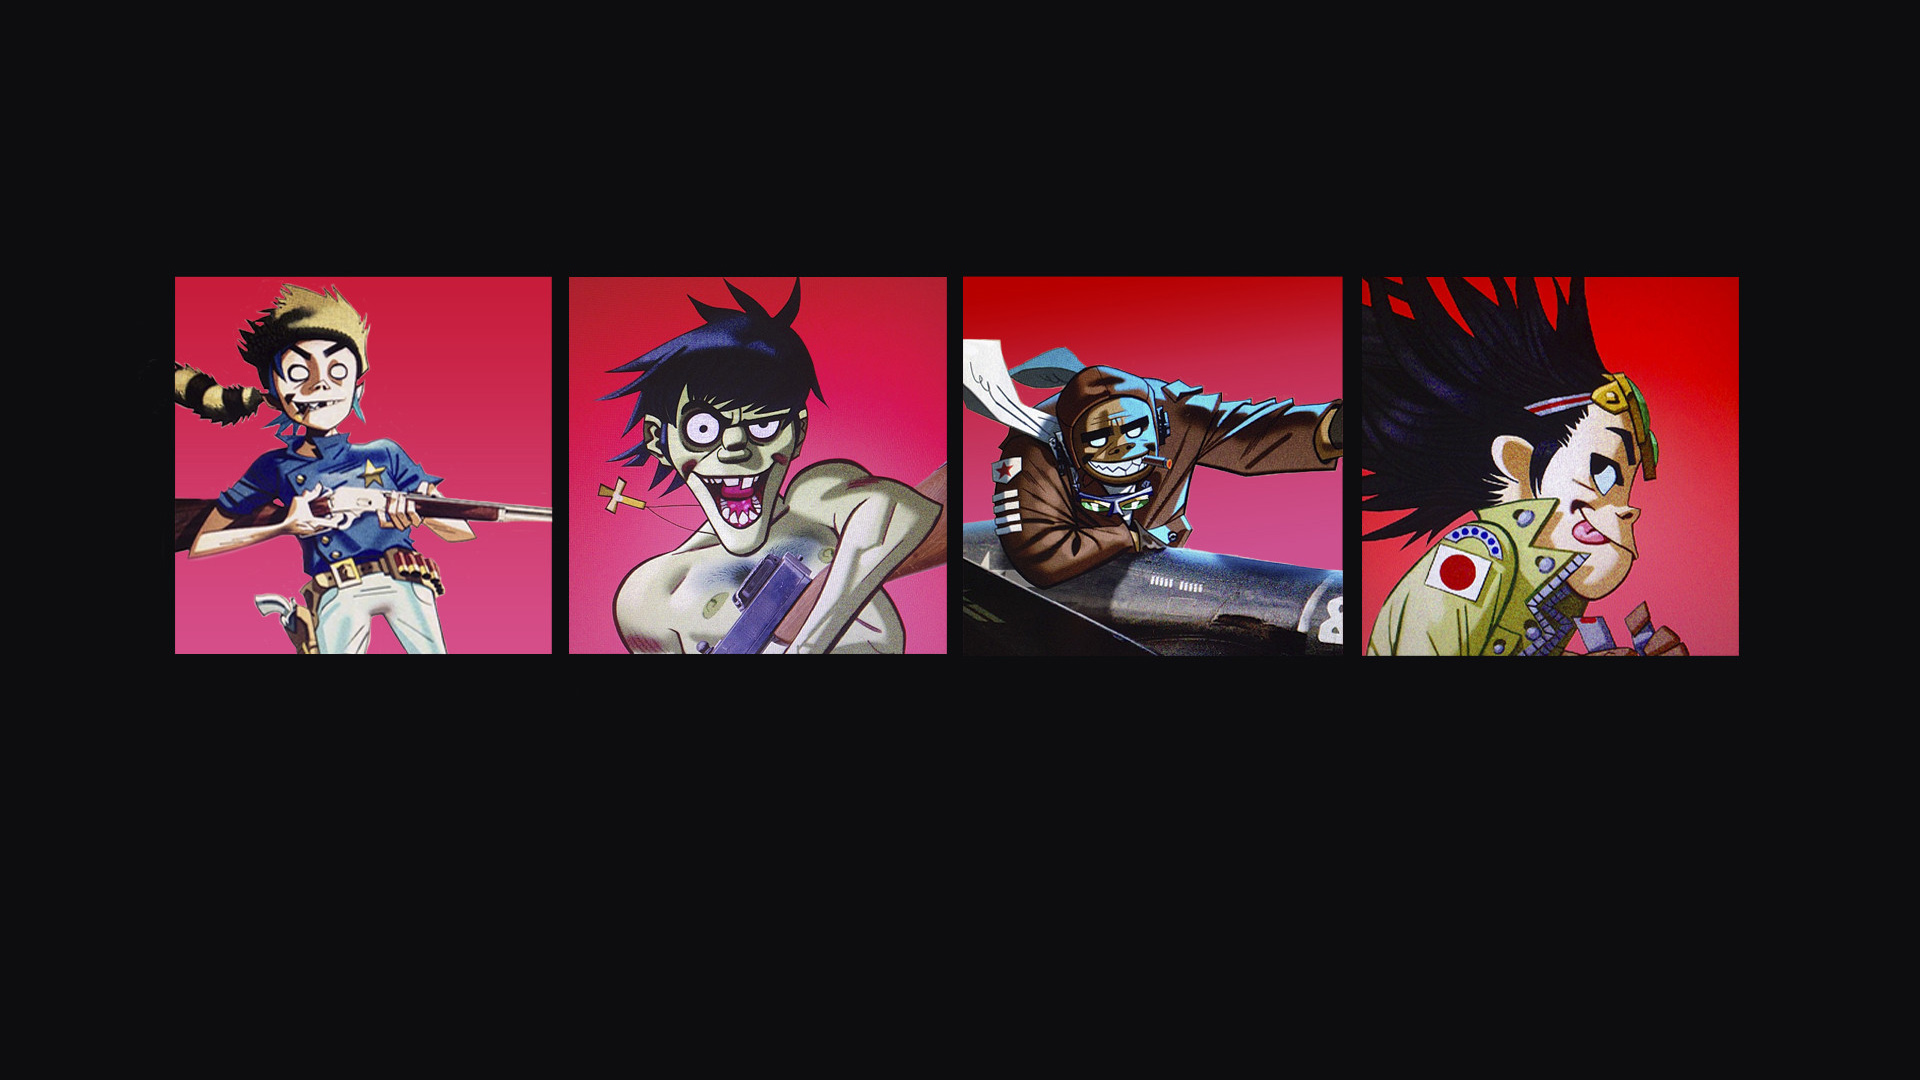 Gorillaz Wallpaper Gorillaz Wallpaper Hd 96645 Hd